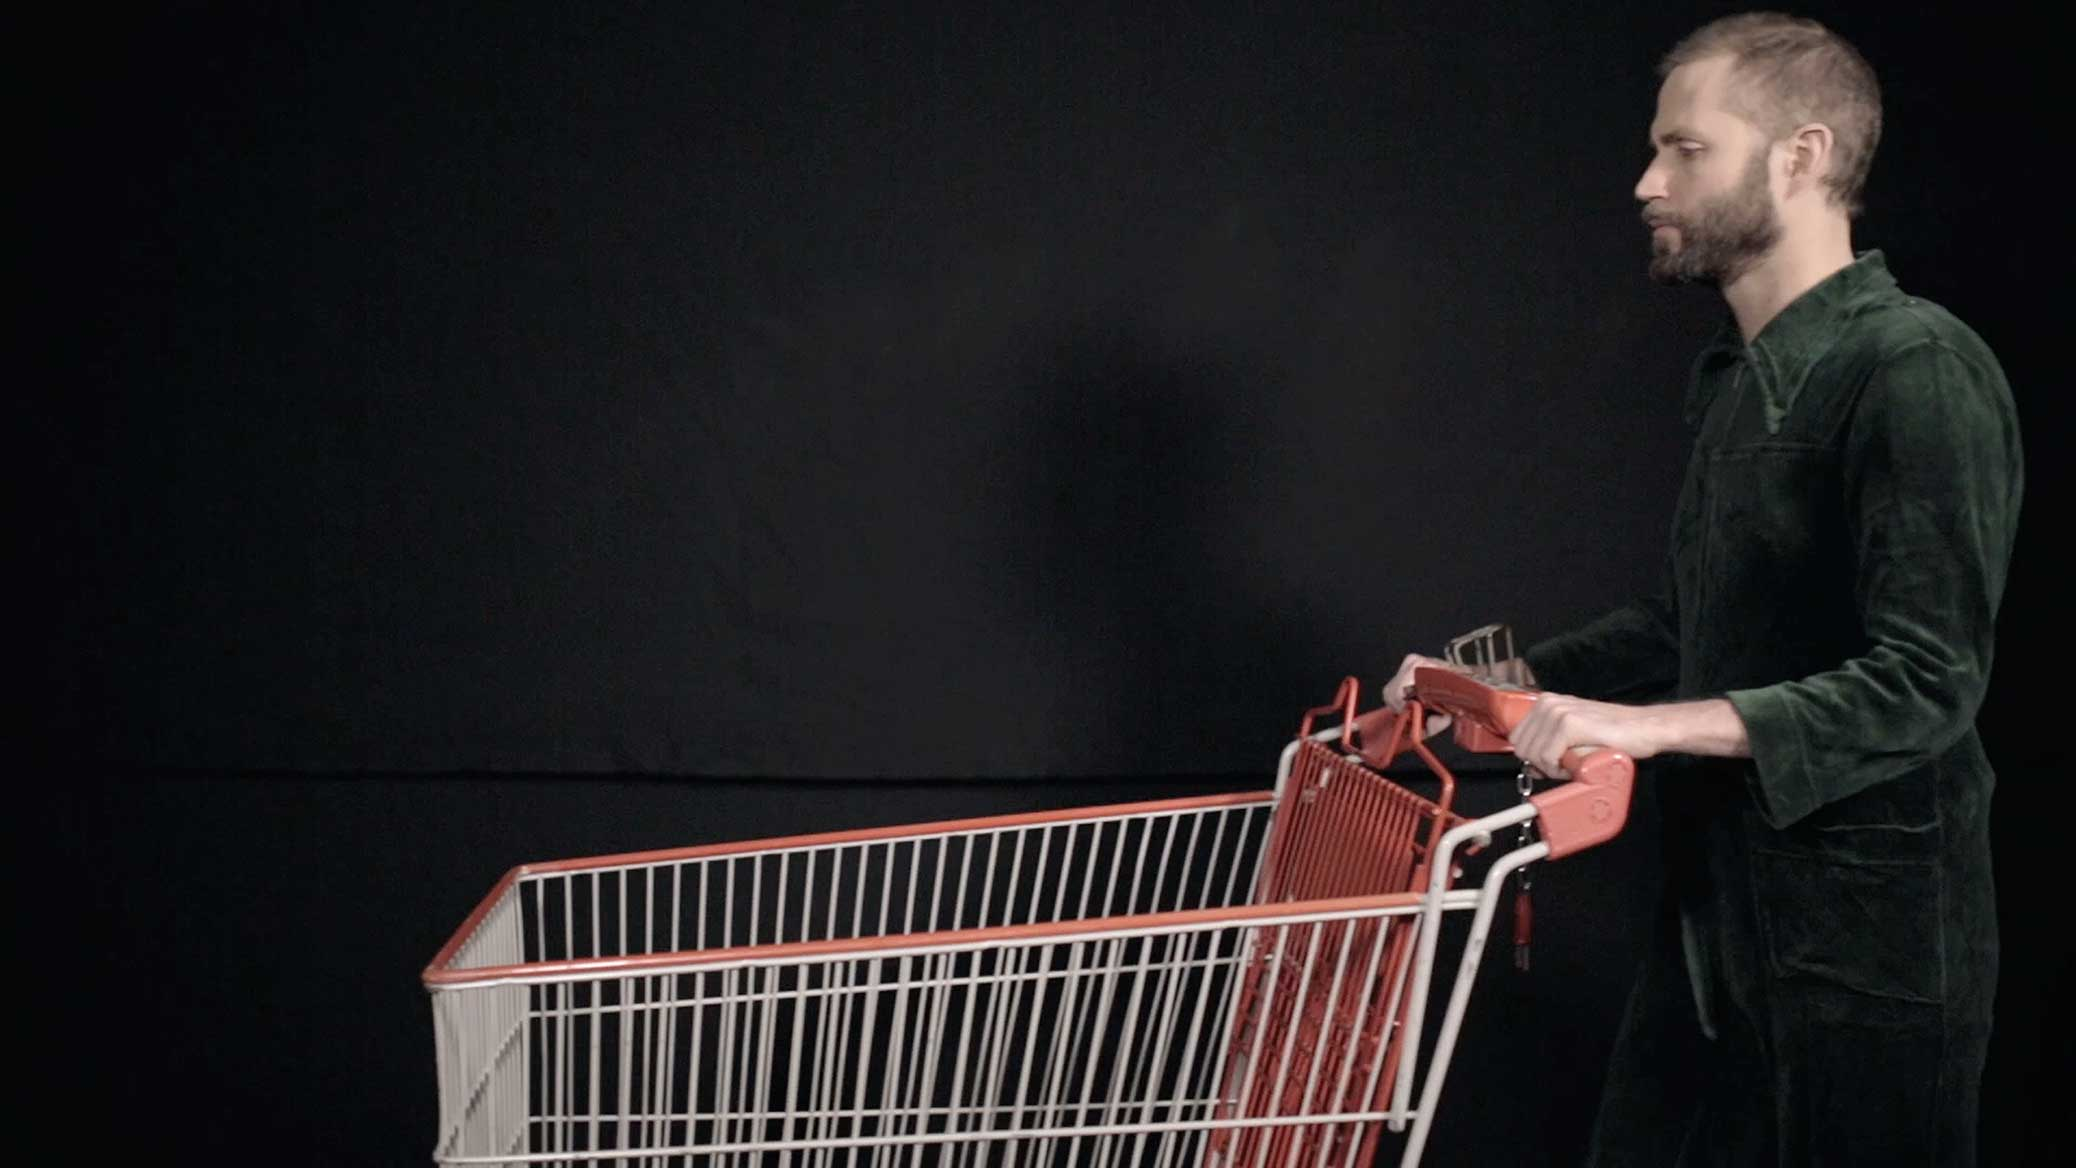 Eight-hour Day, film still, Björn Perborg with shopping cart.